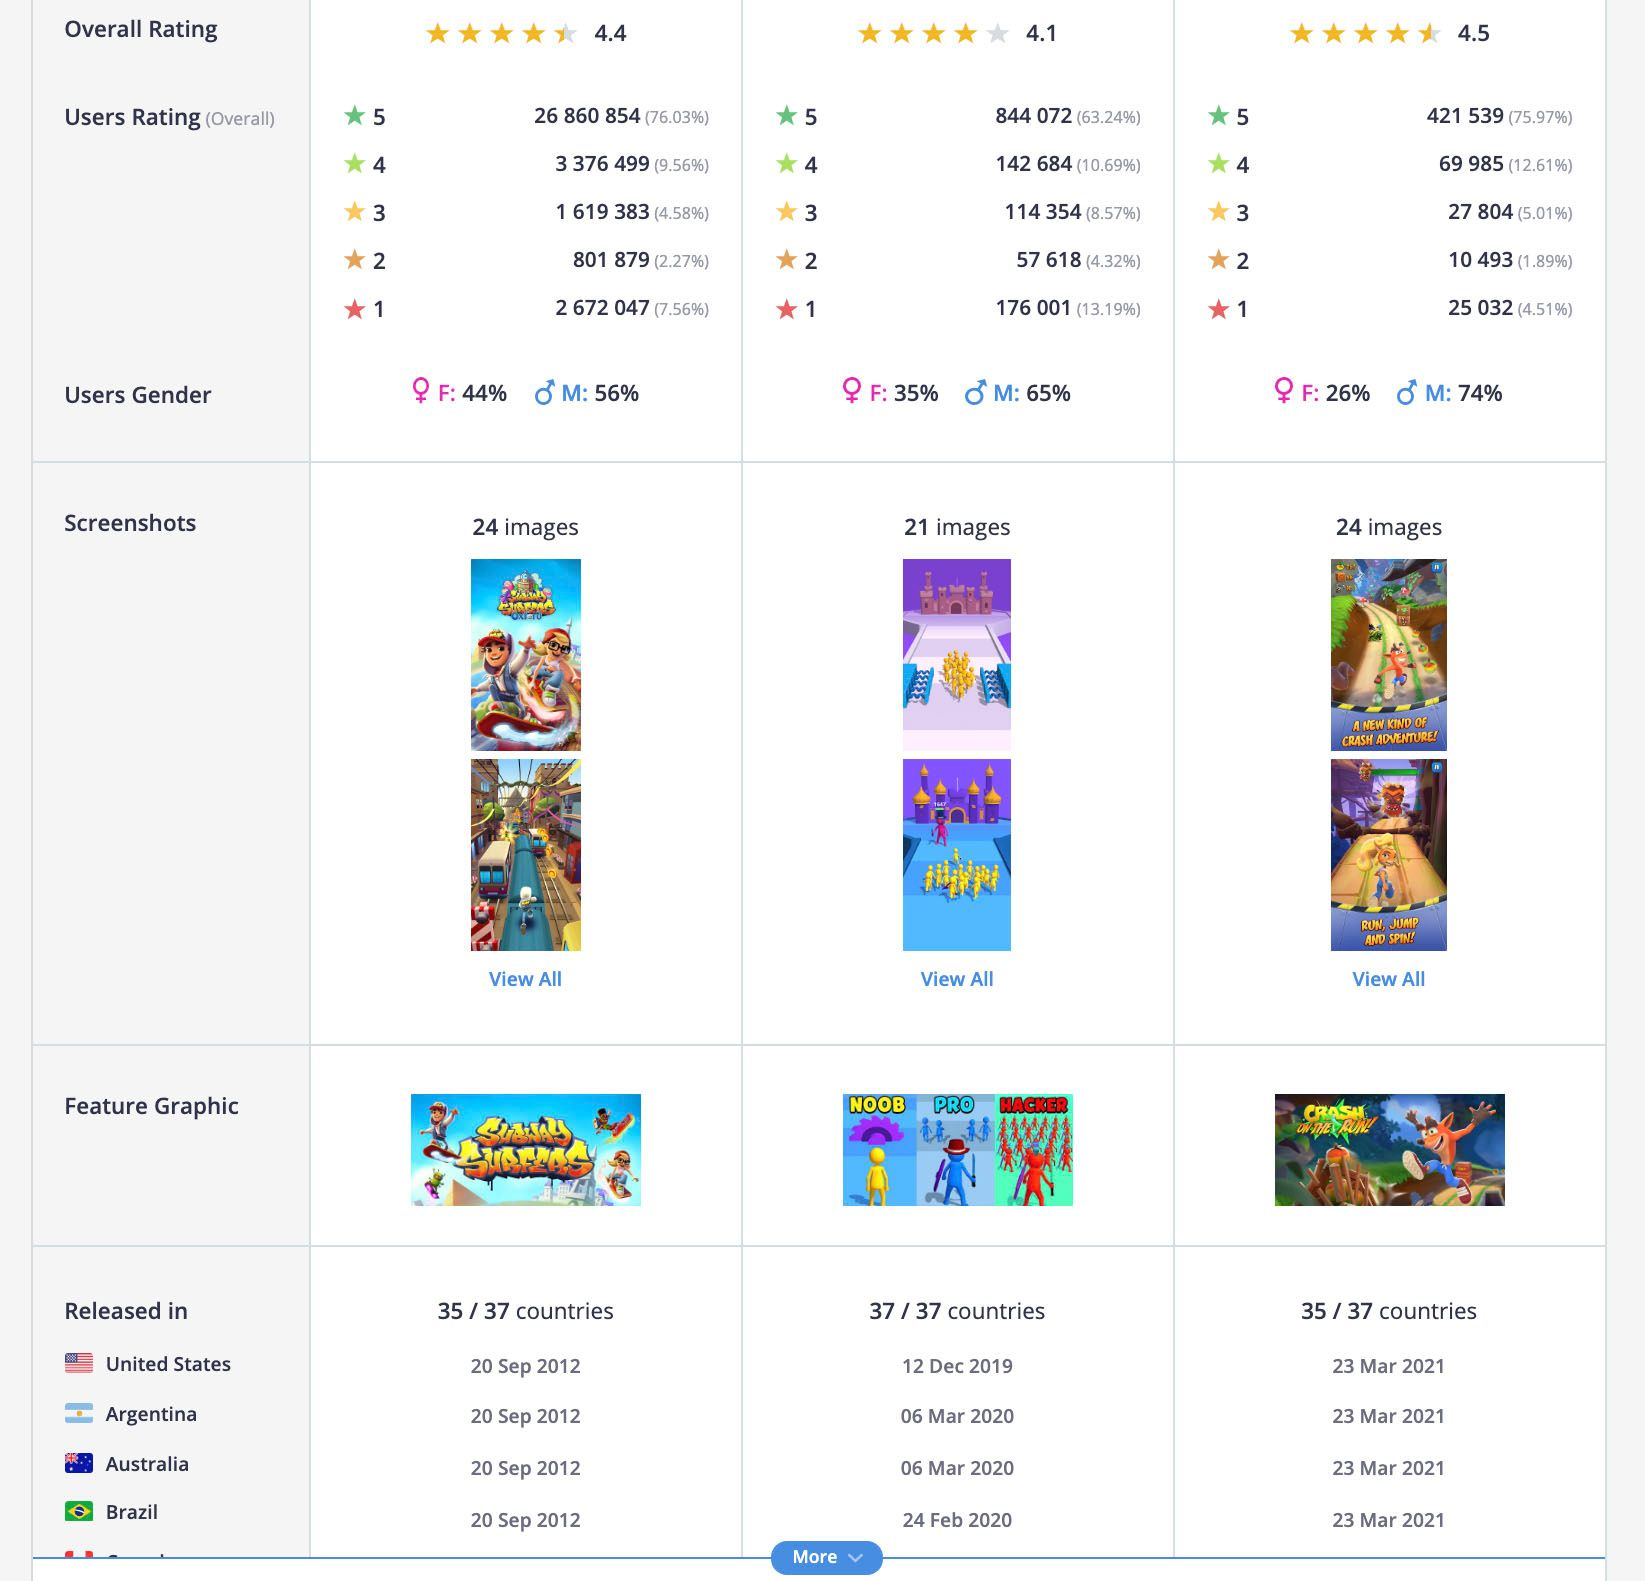 Ratings, demographics, graphic of apps, countries they are released in